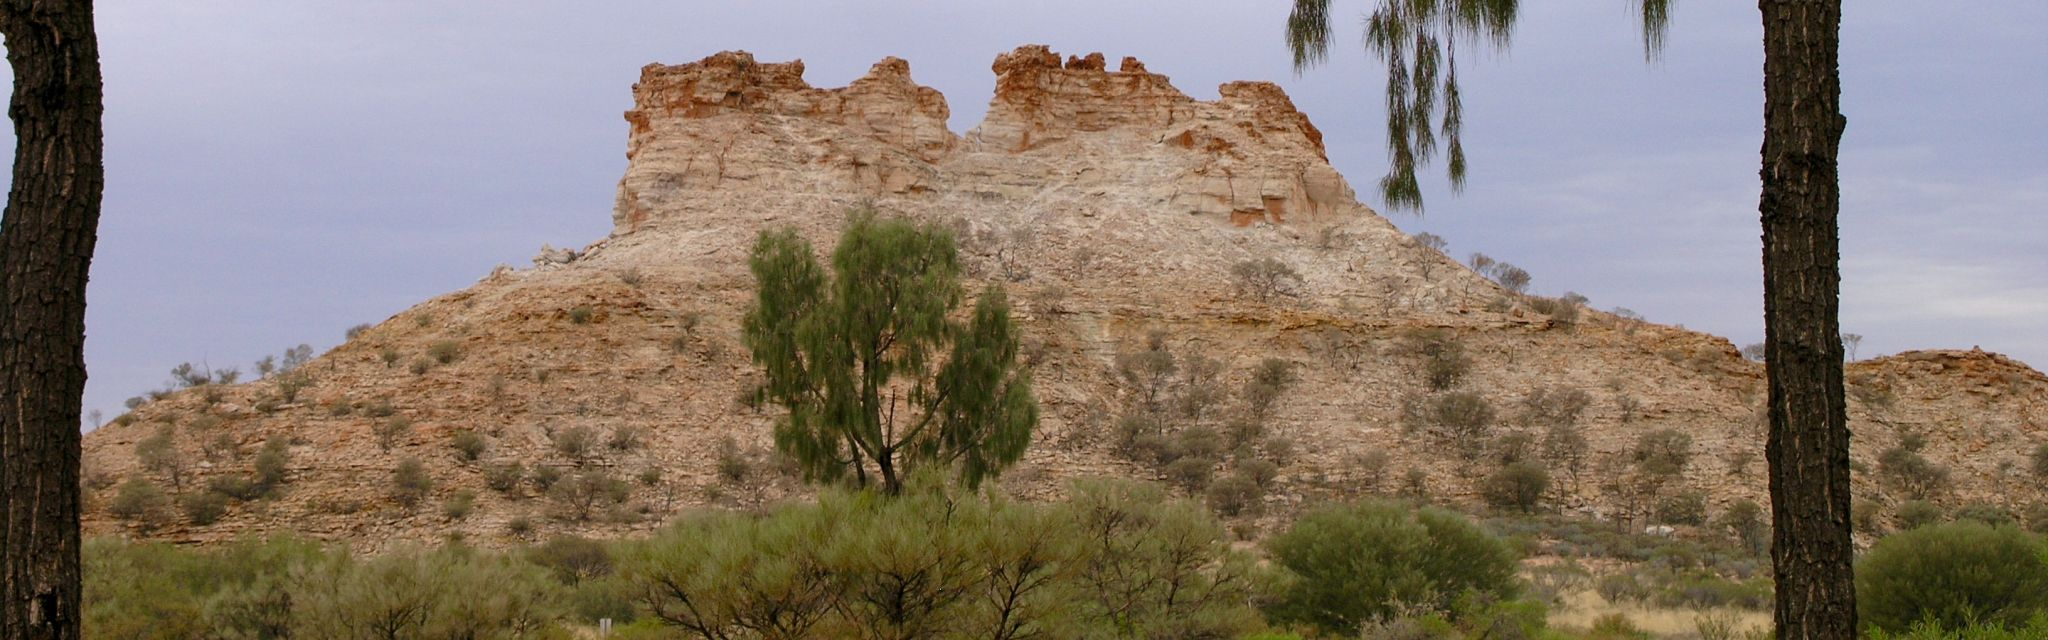 Pillars in the Simpson Desert, image from a Nature Bound Australia Central Australia Red Centre tour